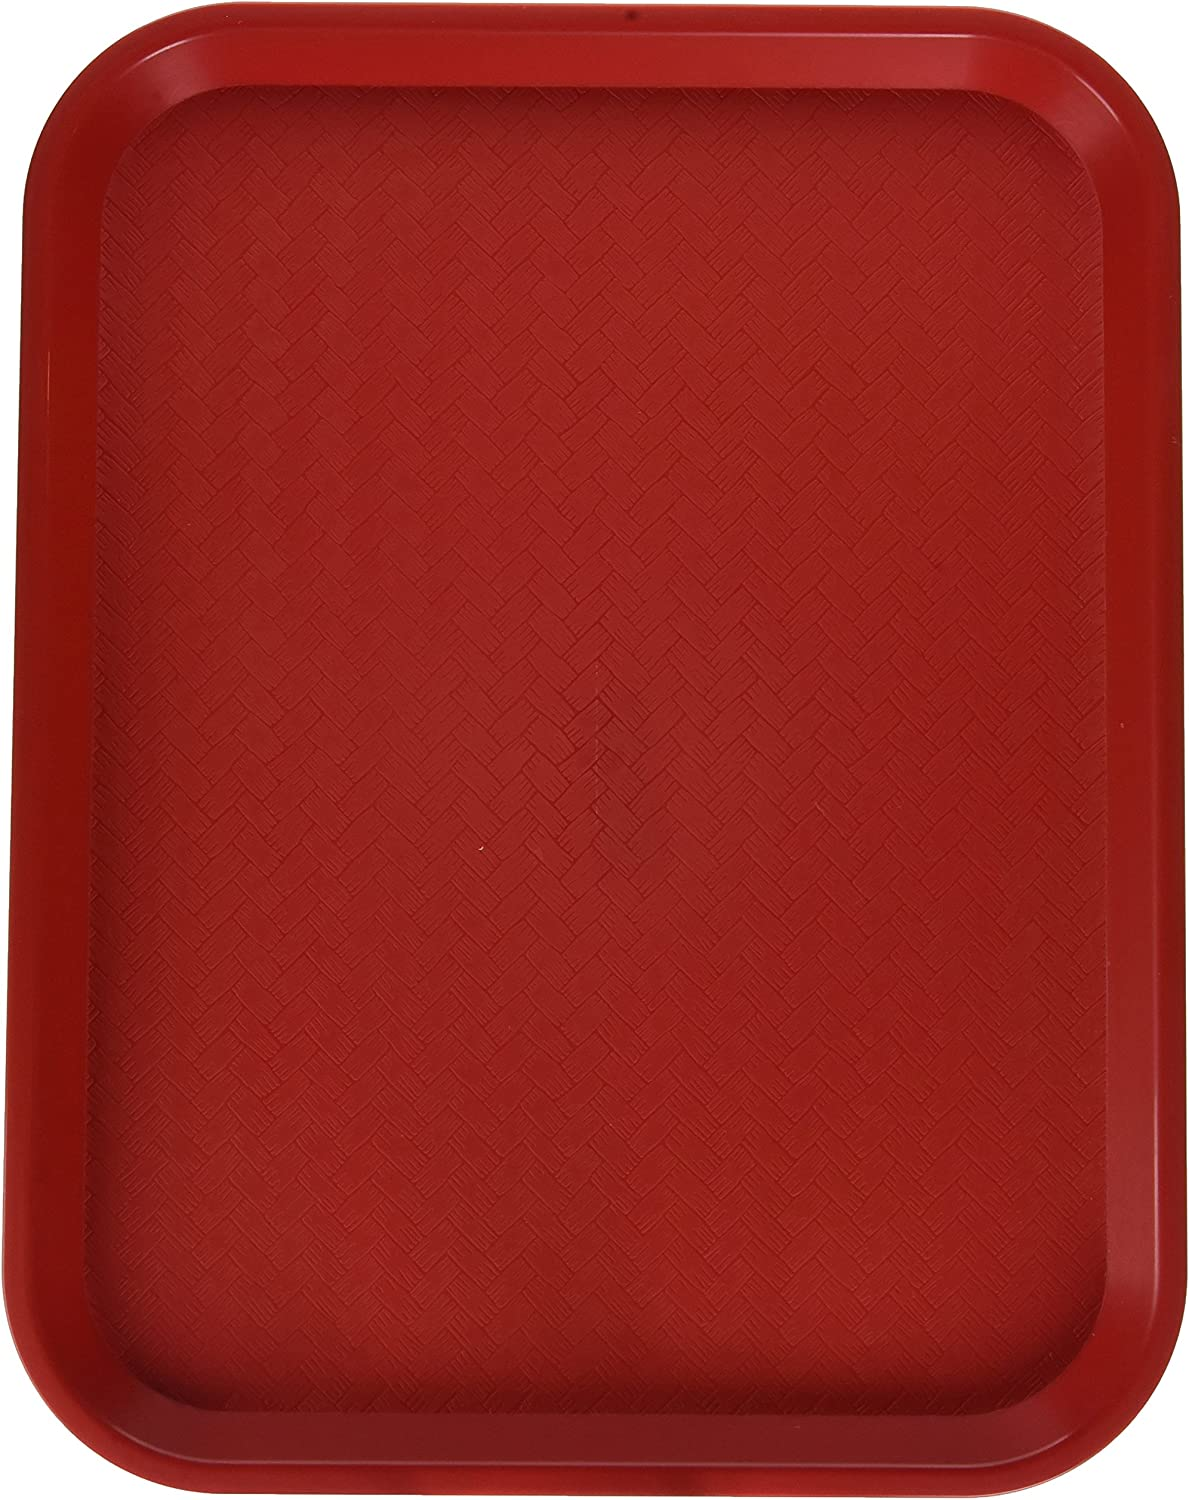 Winco Fast Food Tray, 14 by 18-Inch, Red